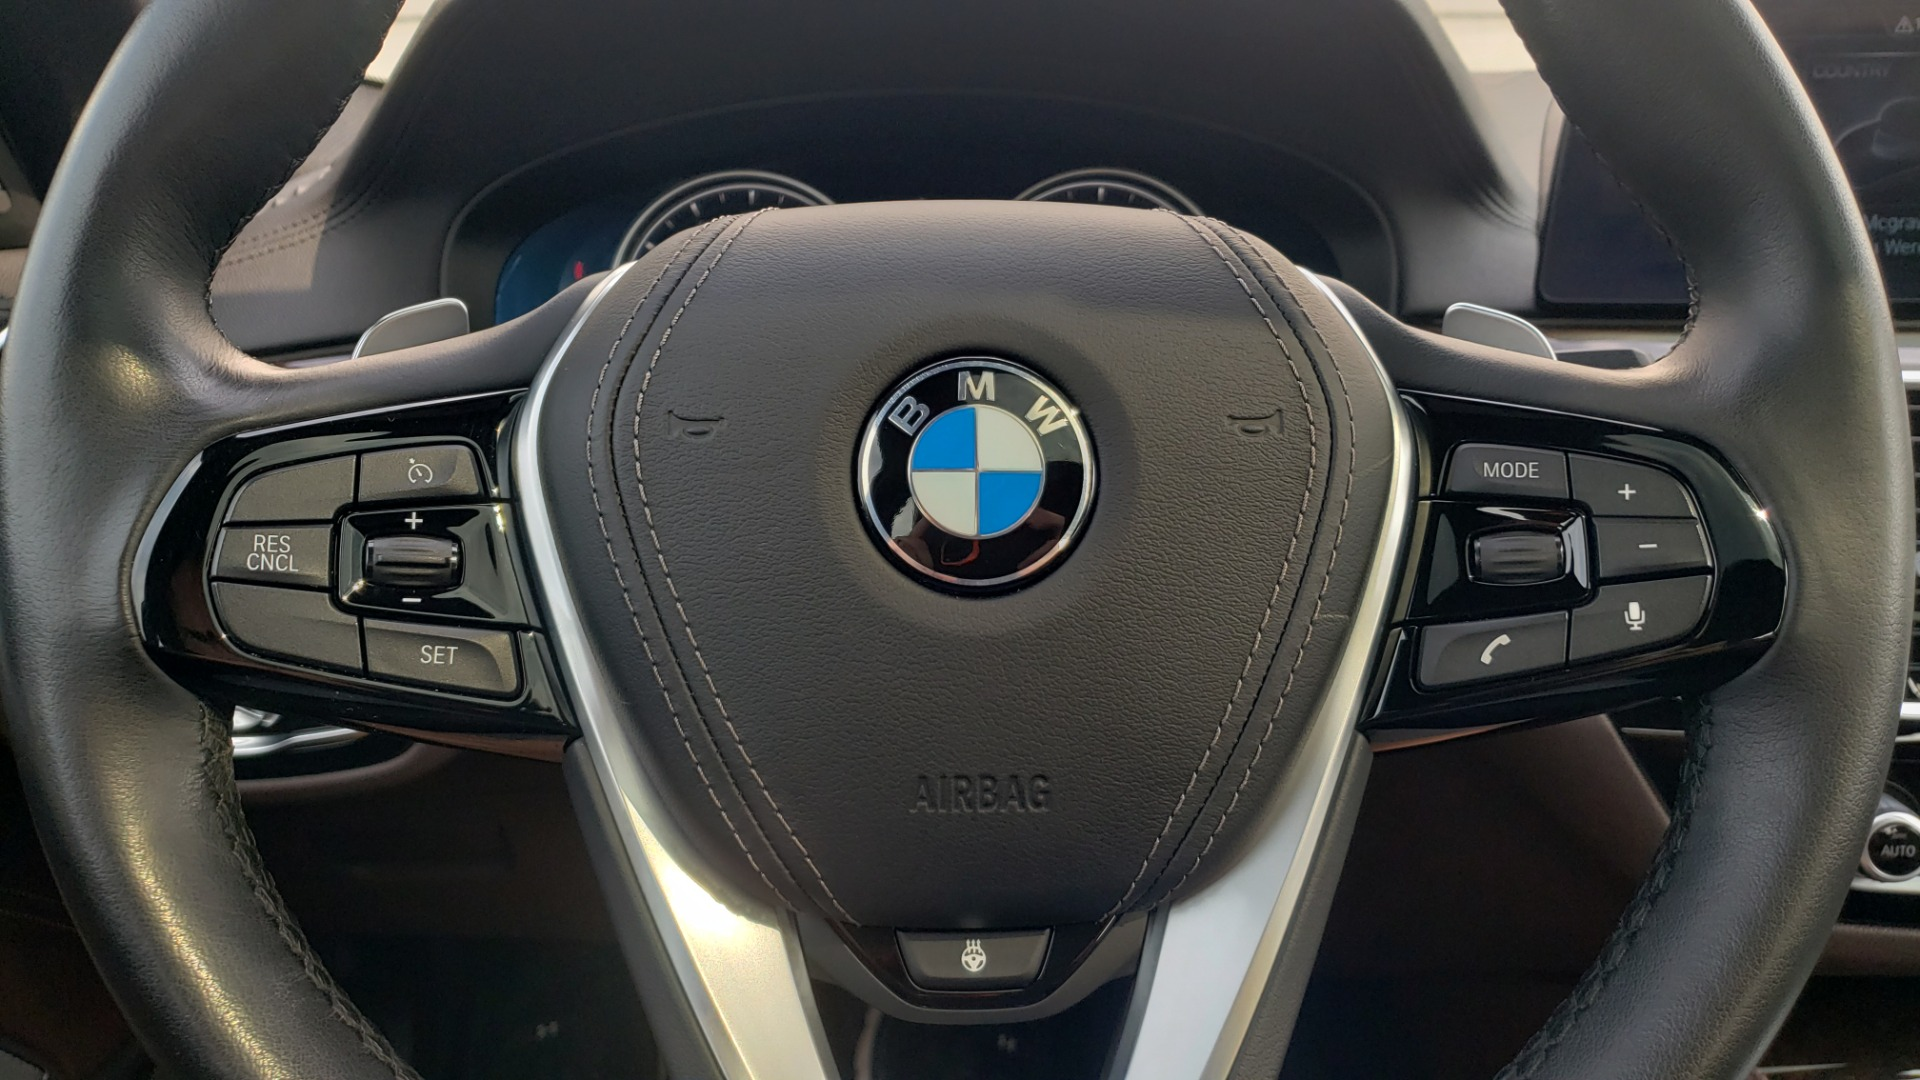 Used 2018 BMW 5 SERIES 540I XDRIVE PREMIUM / EXECUTIVE / LUXURY / H/K SND / REMOTE CONTROL PARKING for sale $40,995 at Formula Imports in Charlotte NC 28227 37